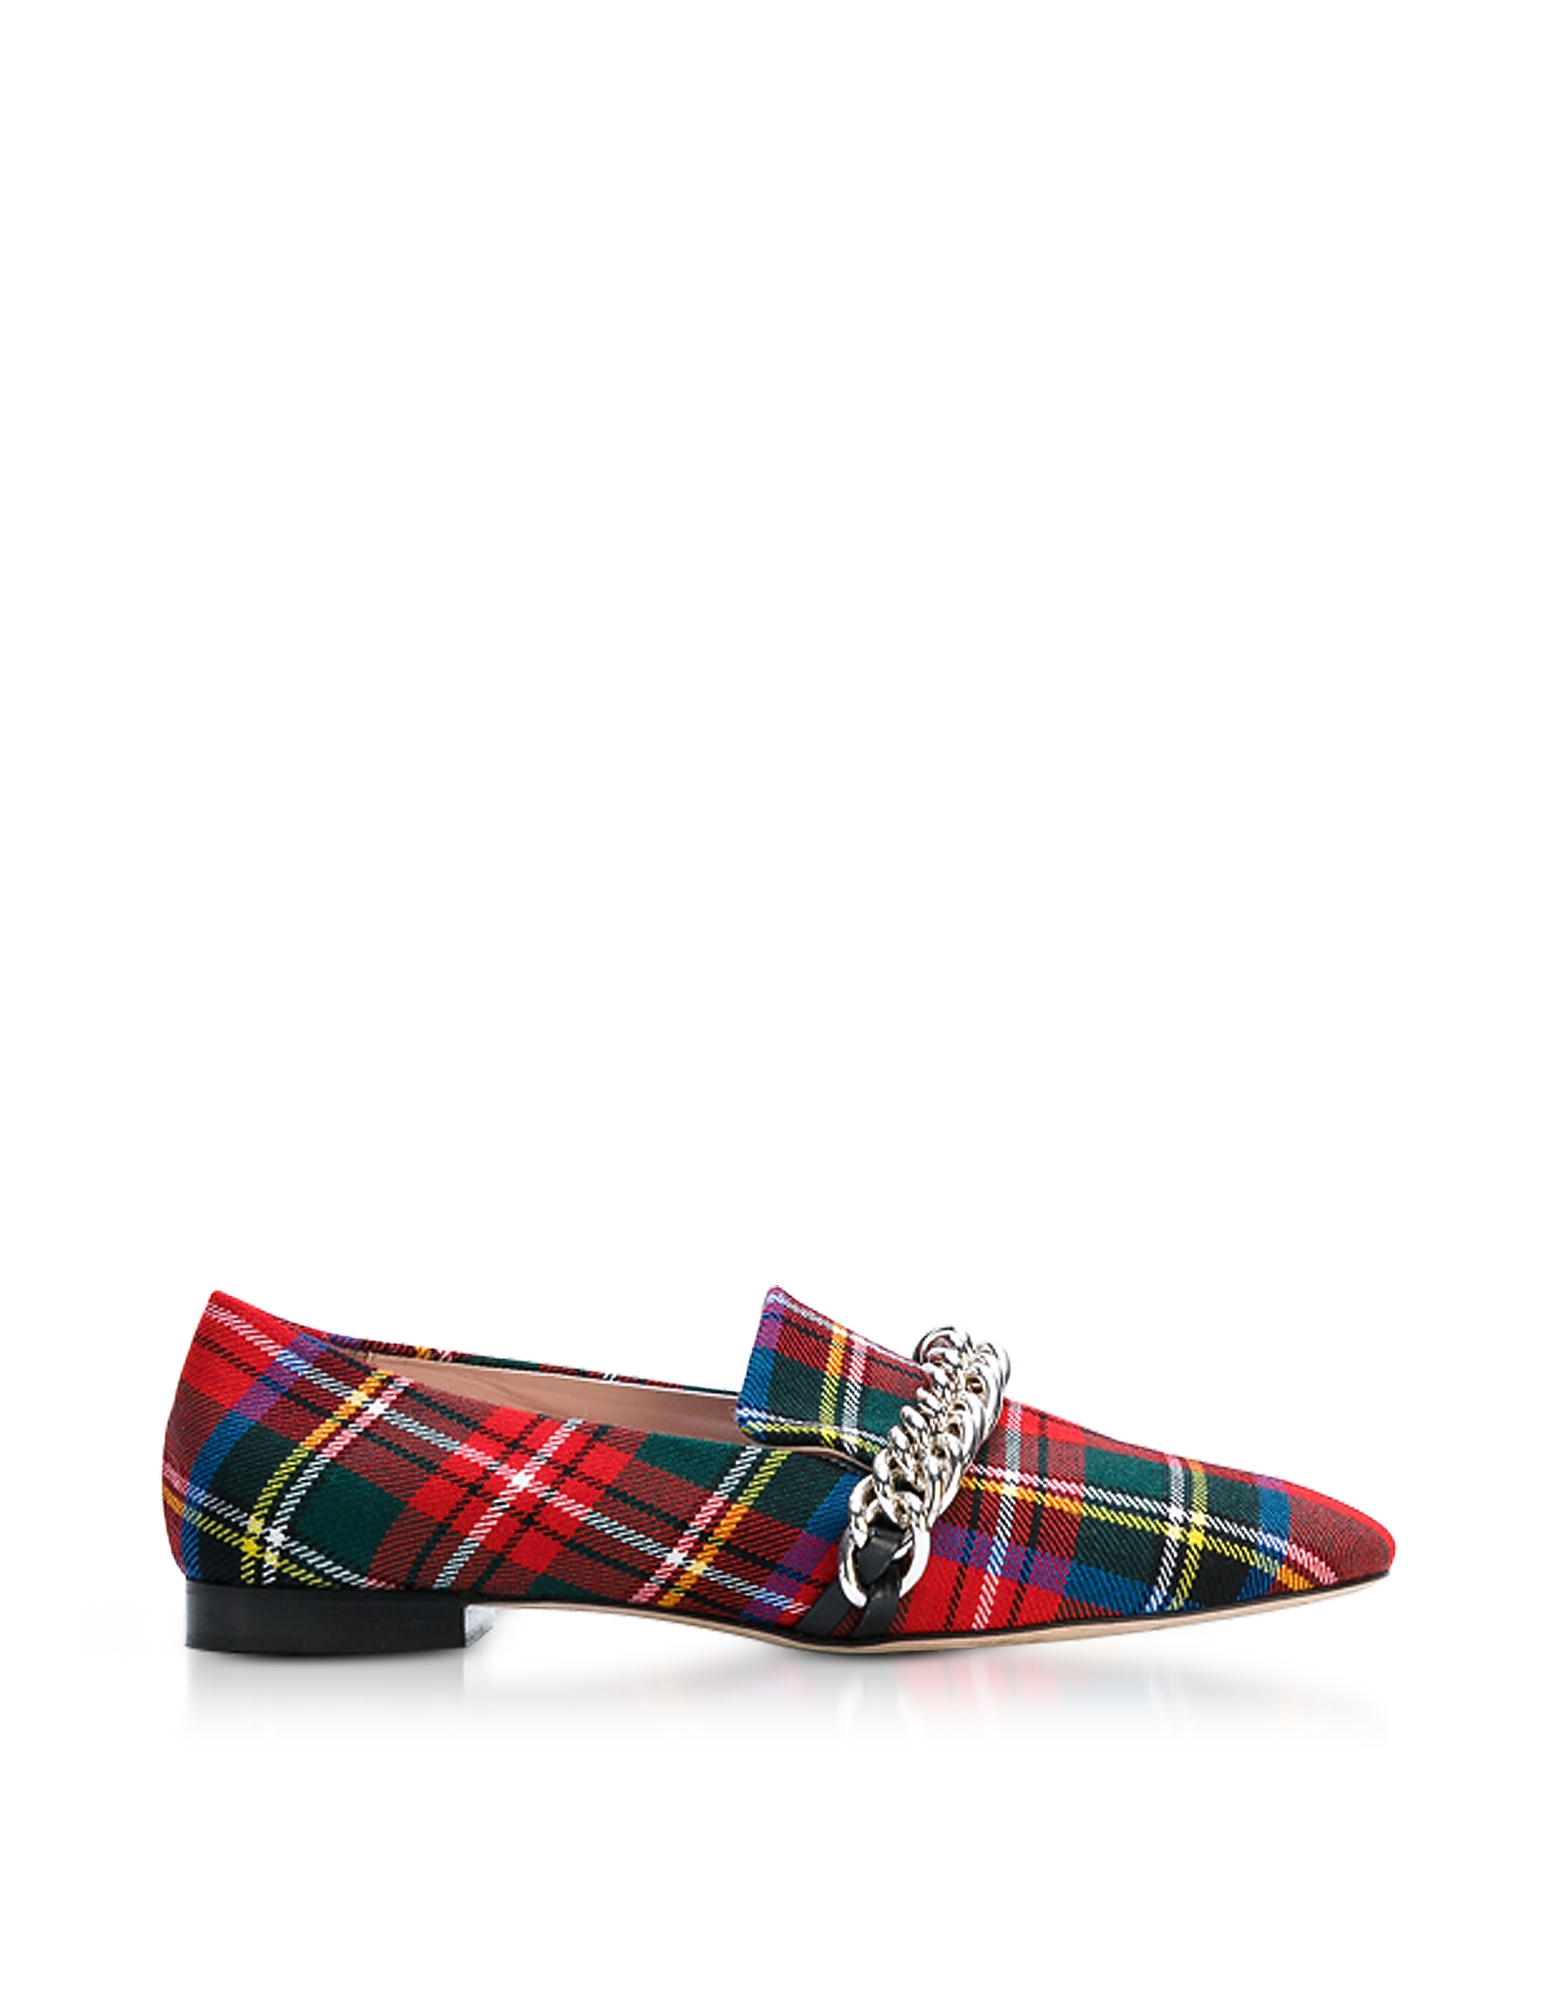 Christopher Kane Shoes, Red Tartan Chain Loafer